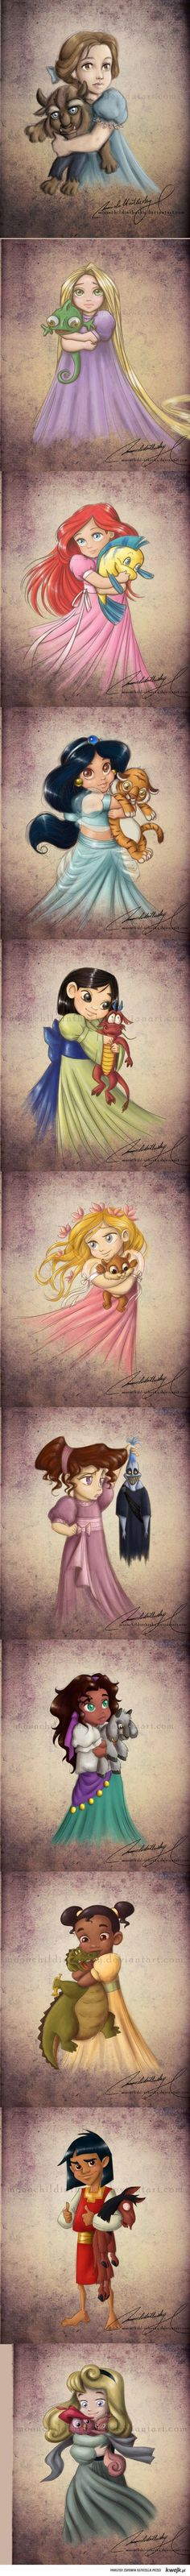 Disney Princess Baby. Would be so cute in a nursery